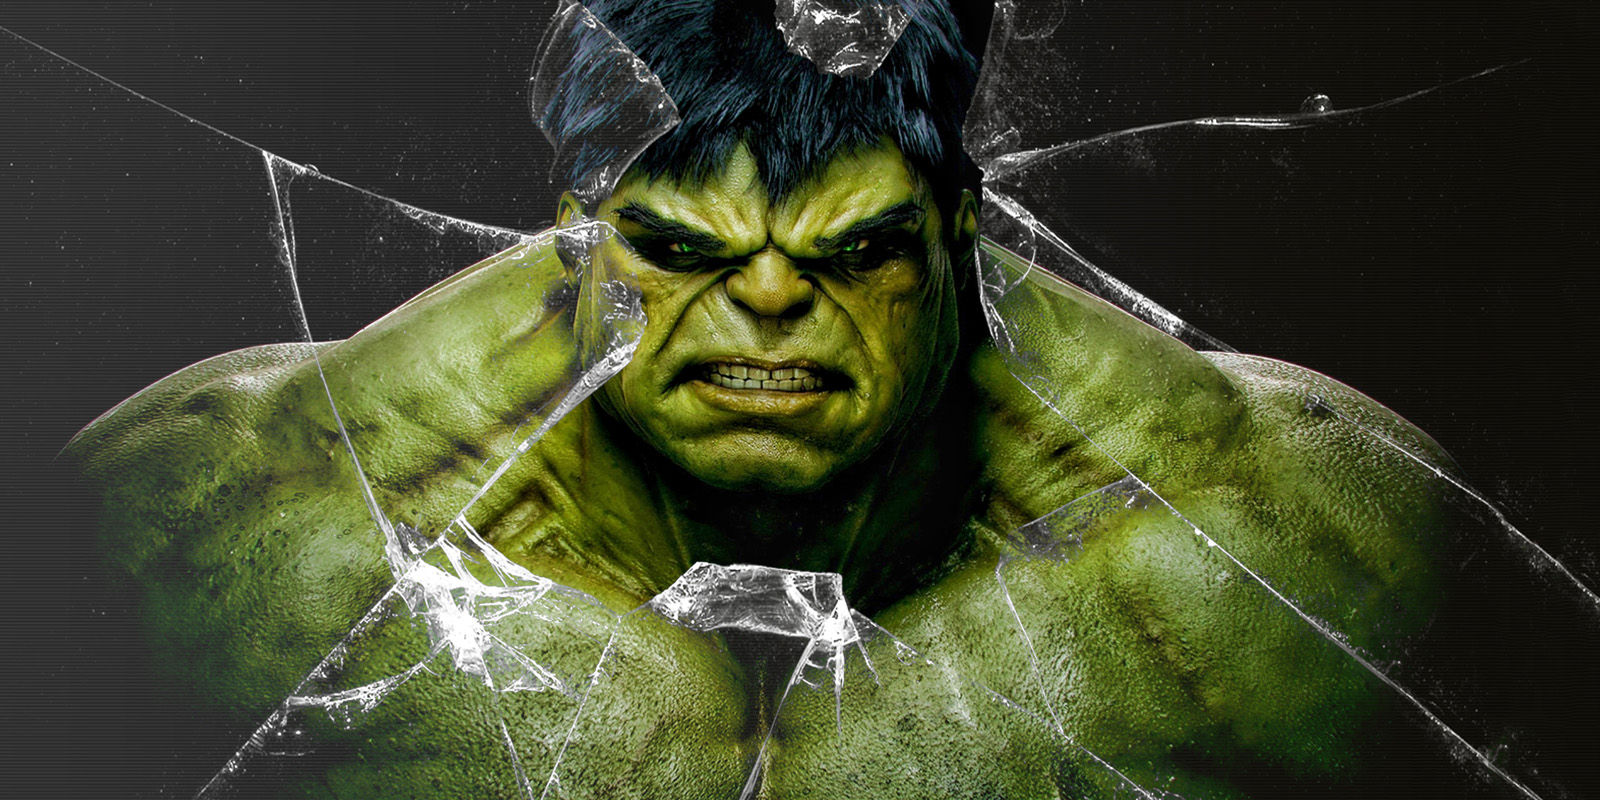 Hulk in a Broken Glass 253.98 Kb